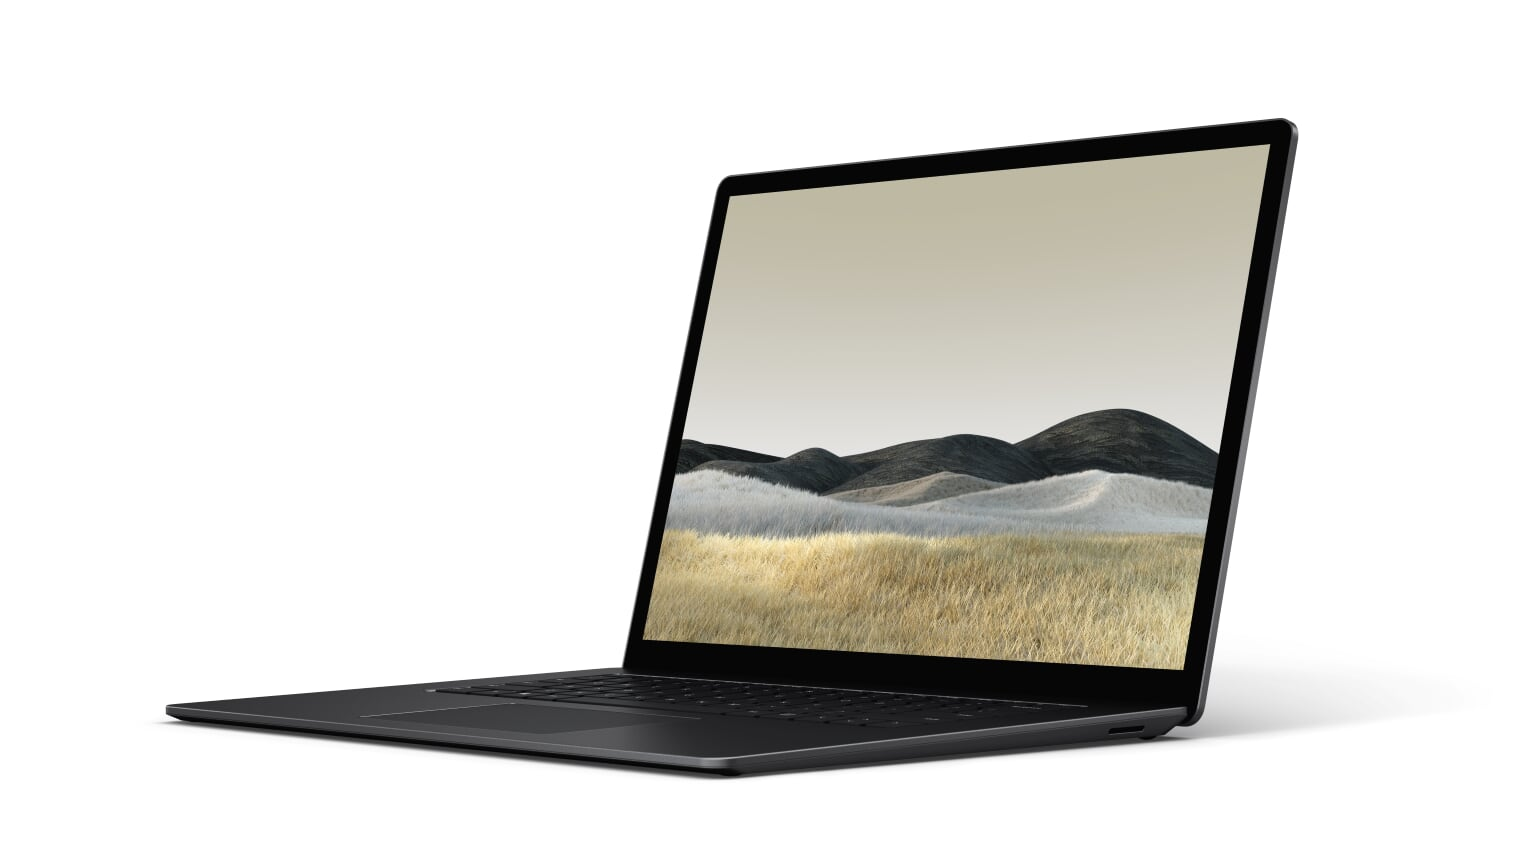 Microsoft Surface Laptop 3 - 15in / i5-1035G7 / 8GB / 256GB, Black; Commercial